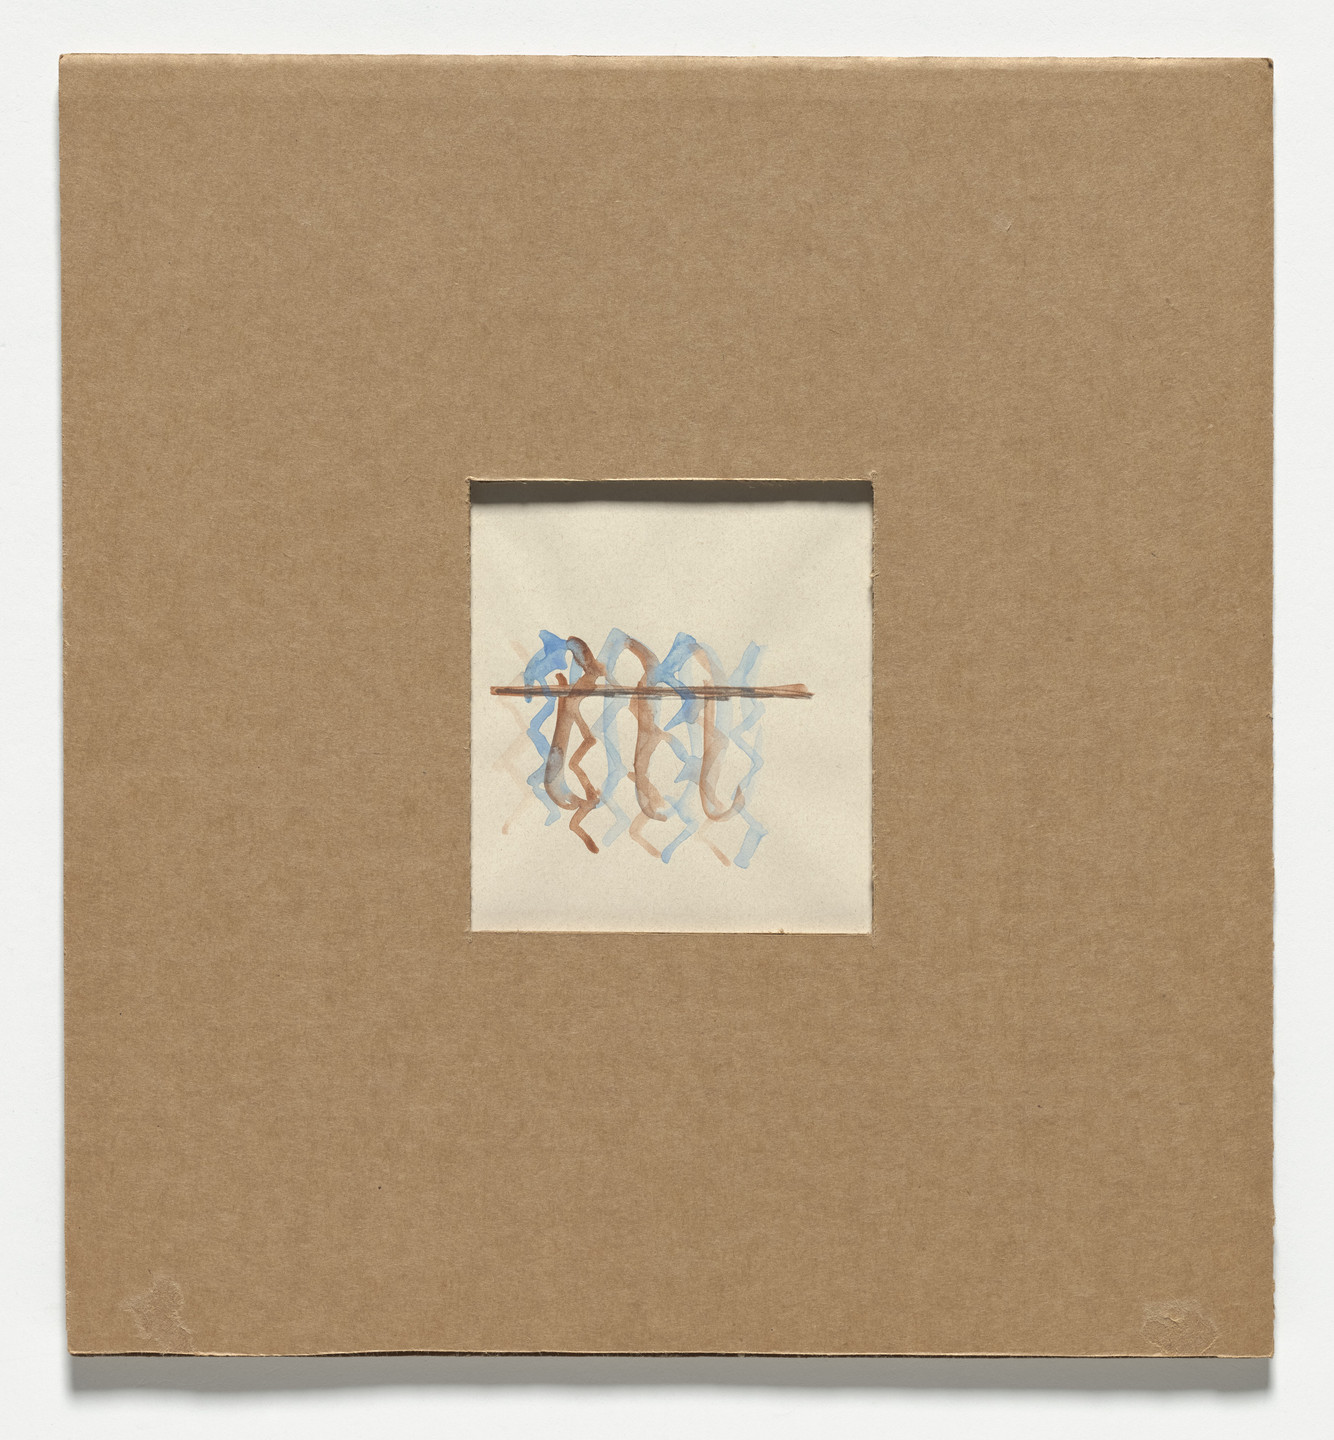 Richard Tuttle. Photographs 3. 1984